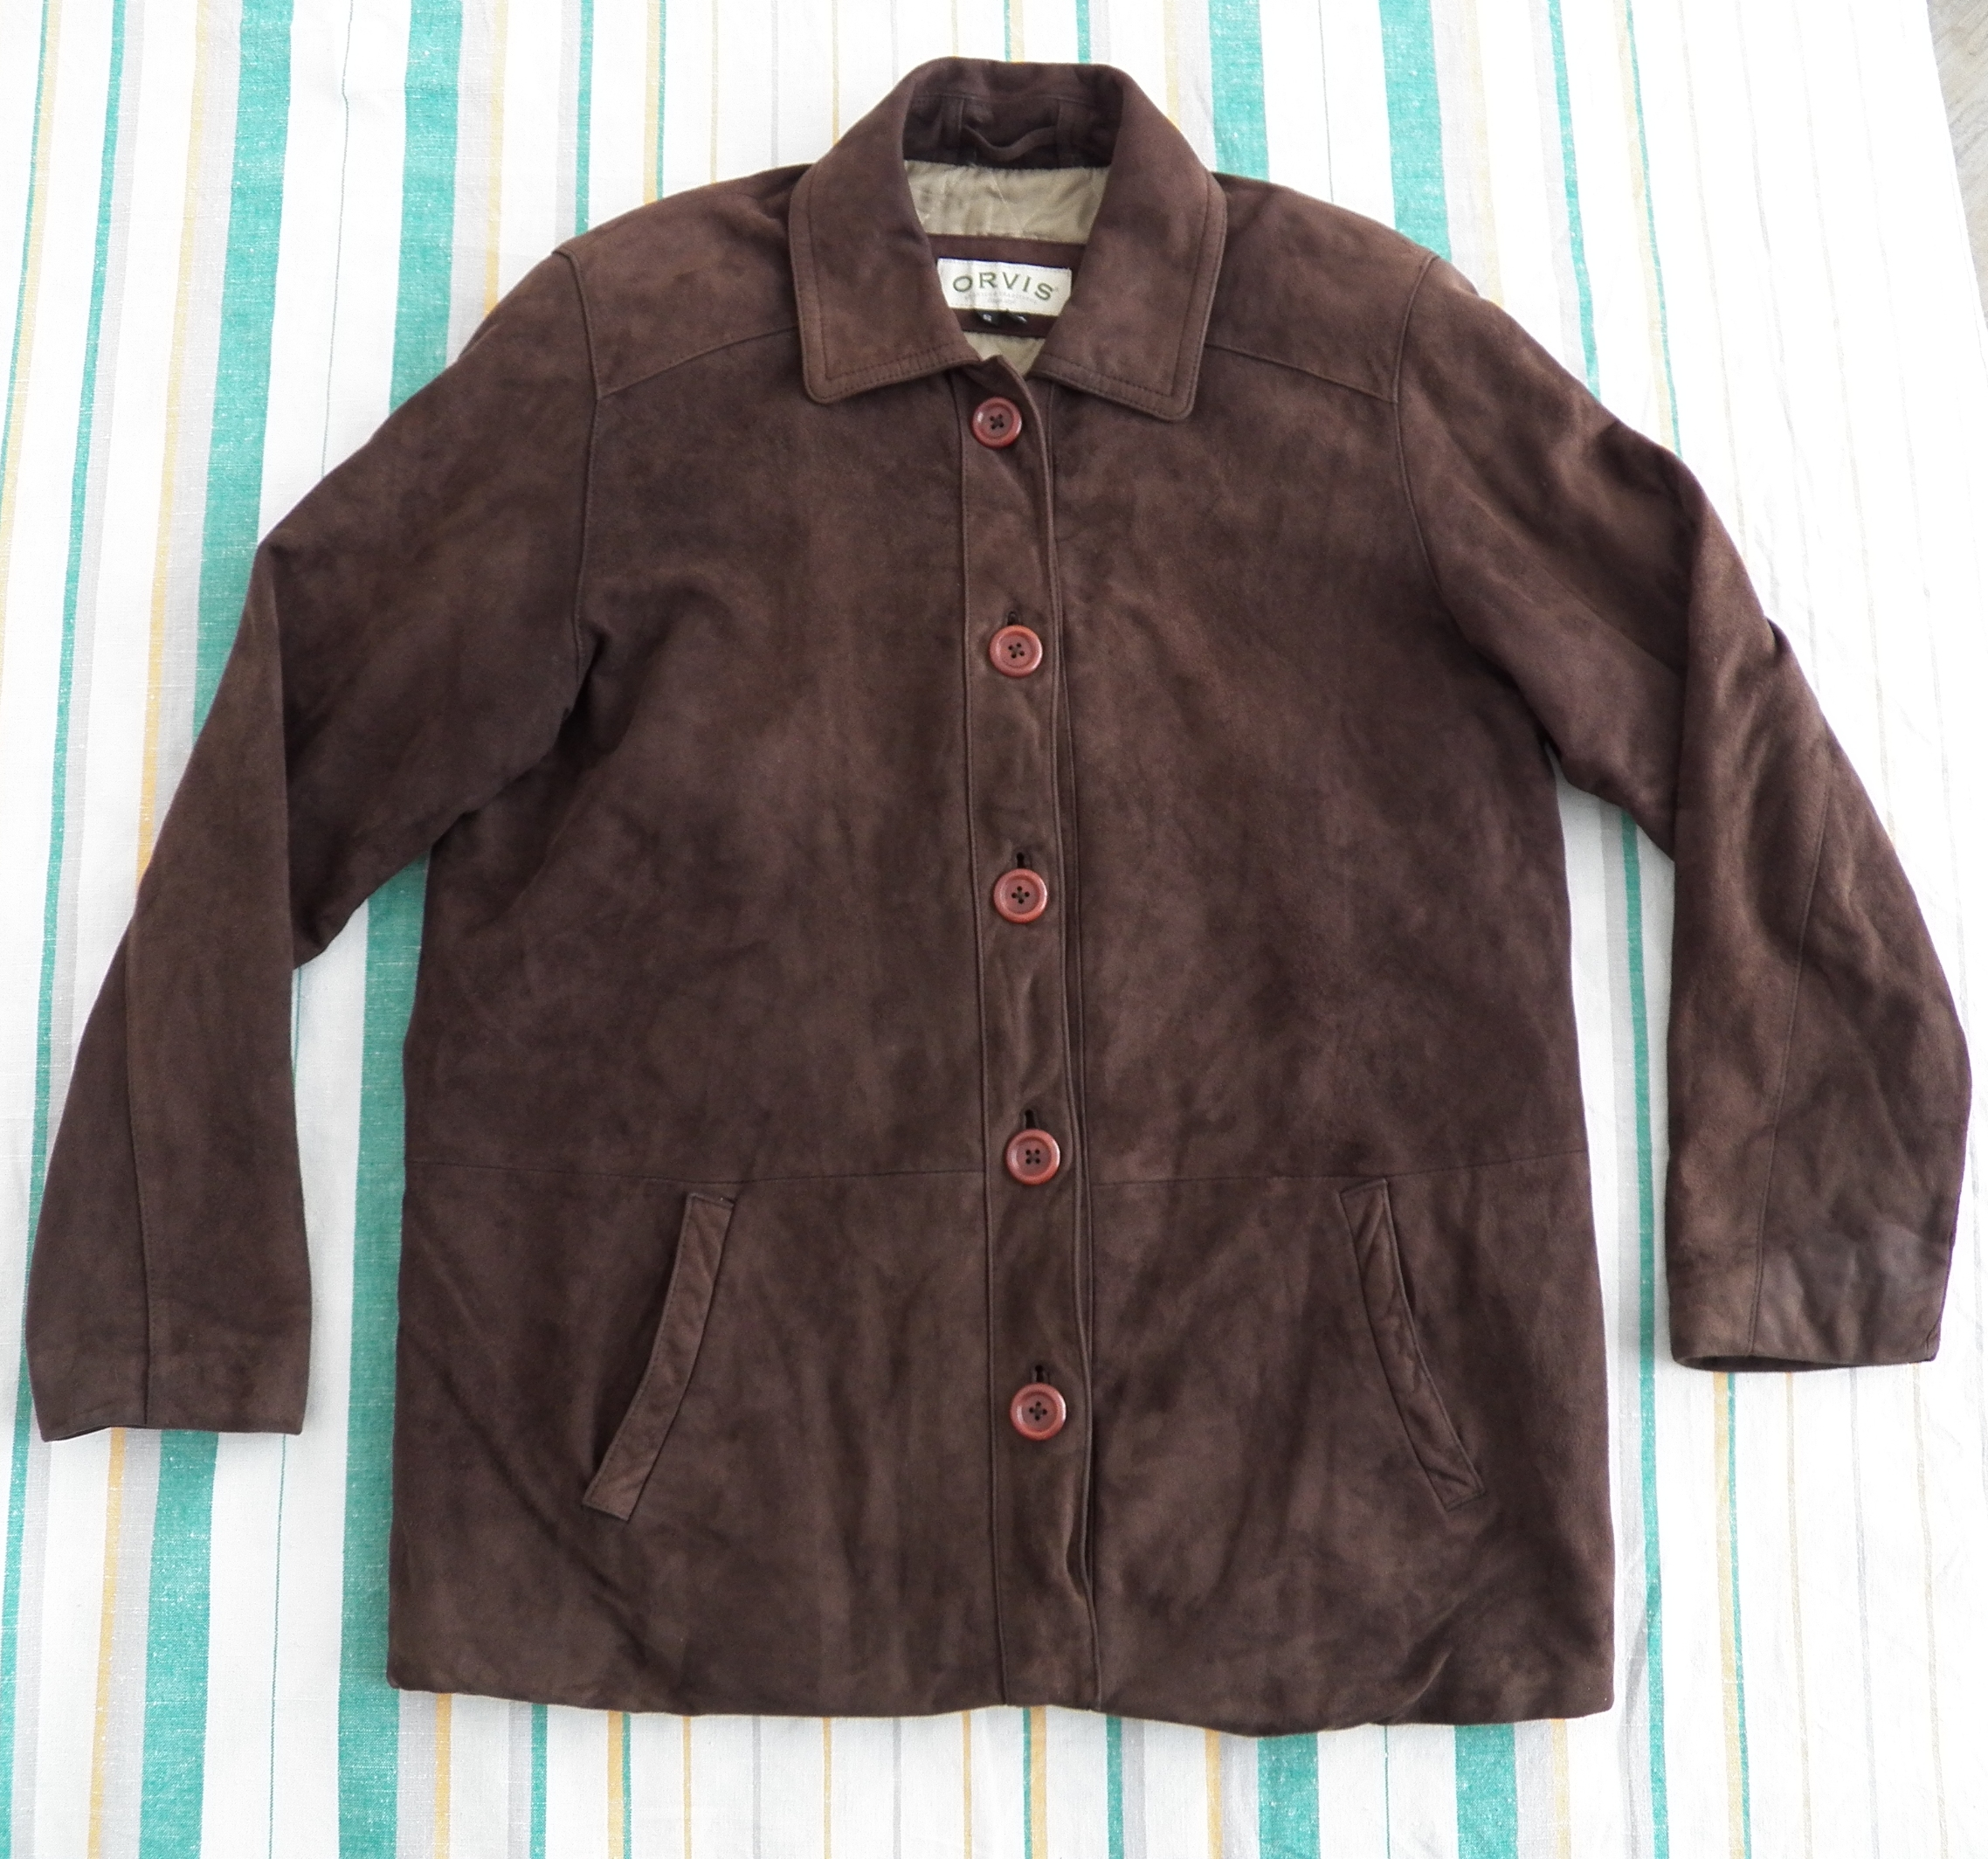 bdb547c65d3 Orvis WOMENS Brown Soft Suede Leather Ranch Jacket Size Small Quilted  Insulated